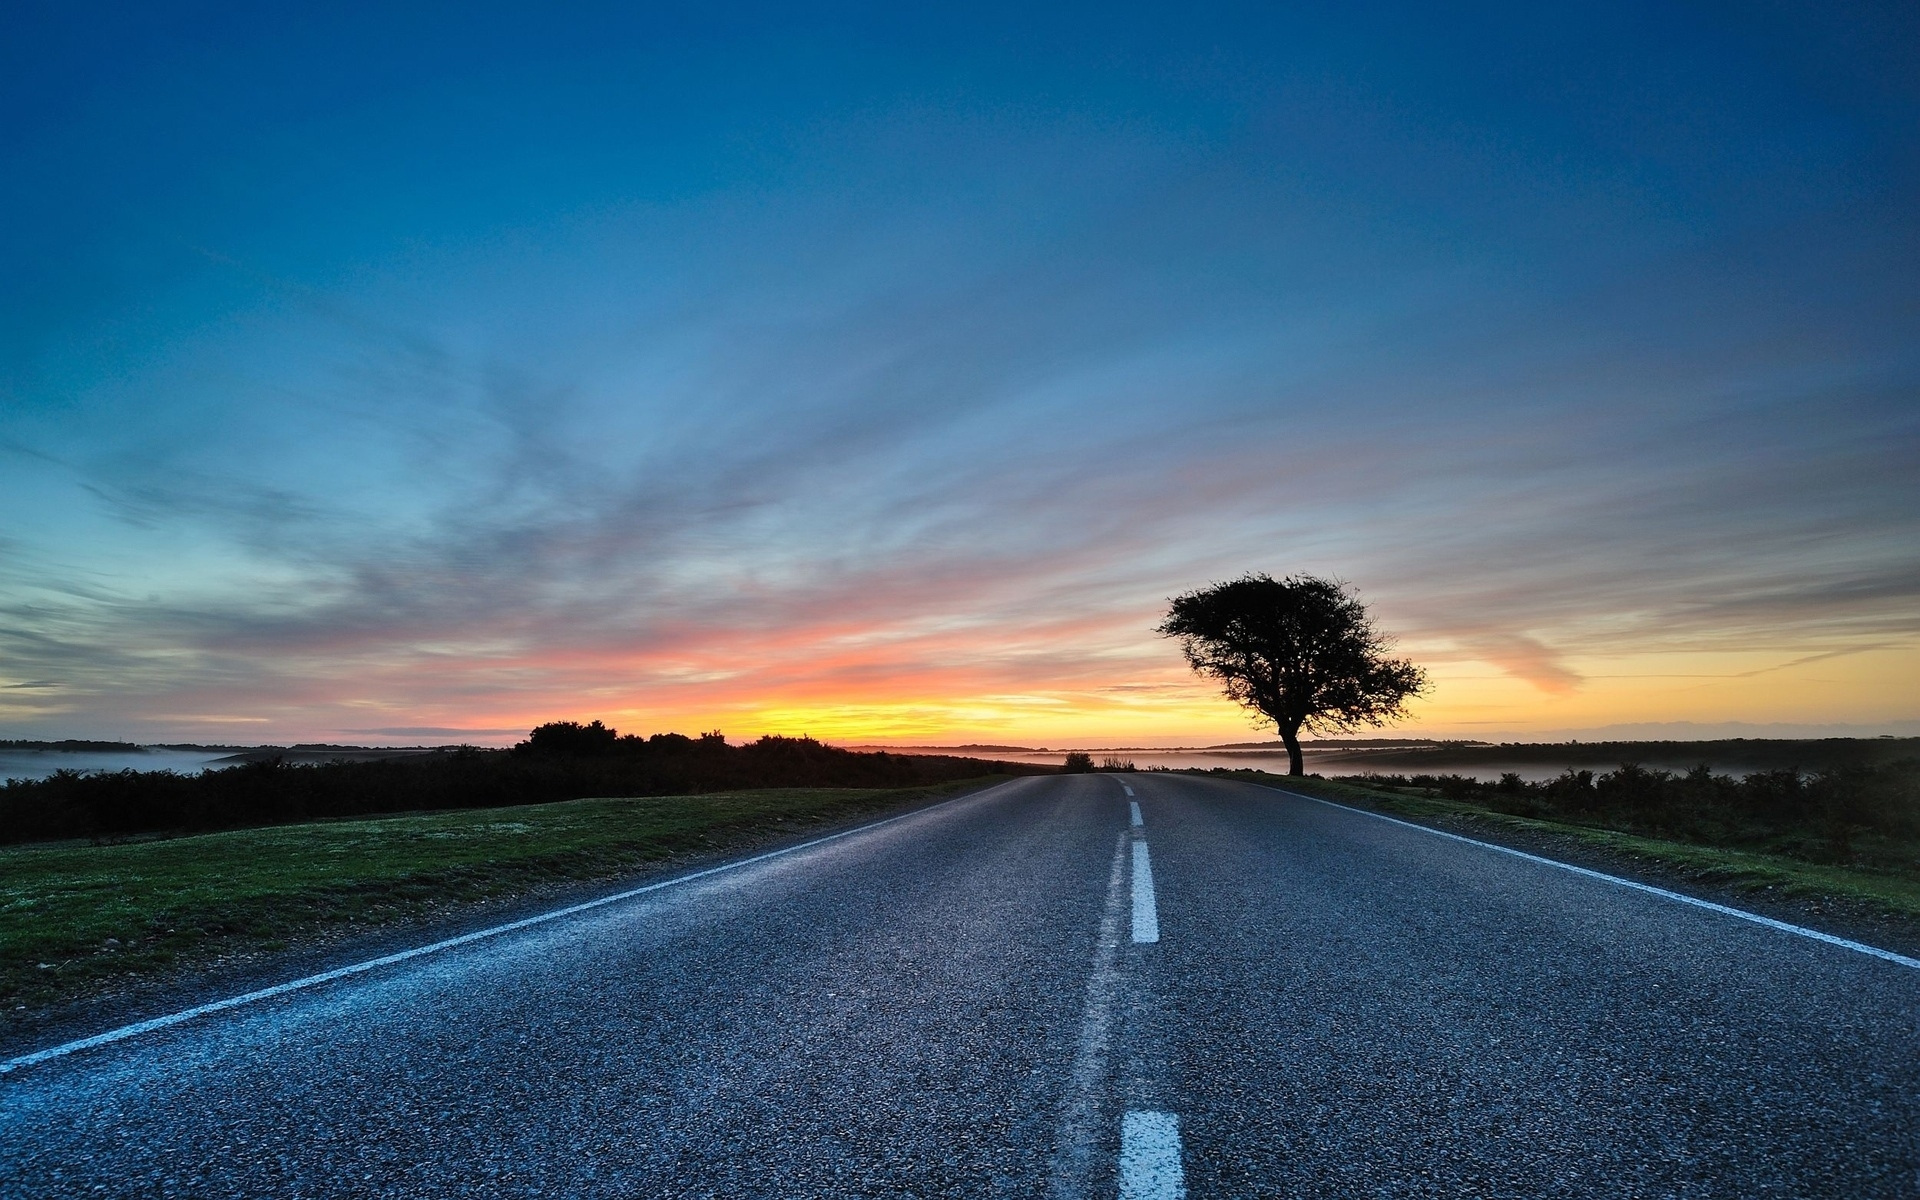 nature wallpapers night road - photo #33